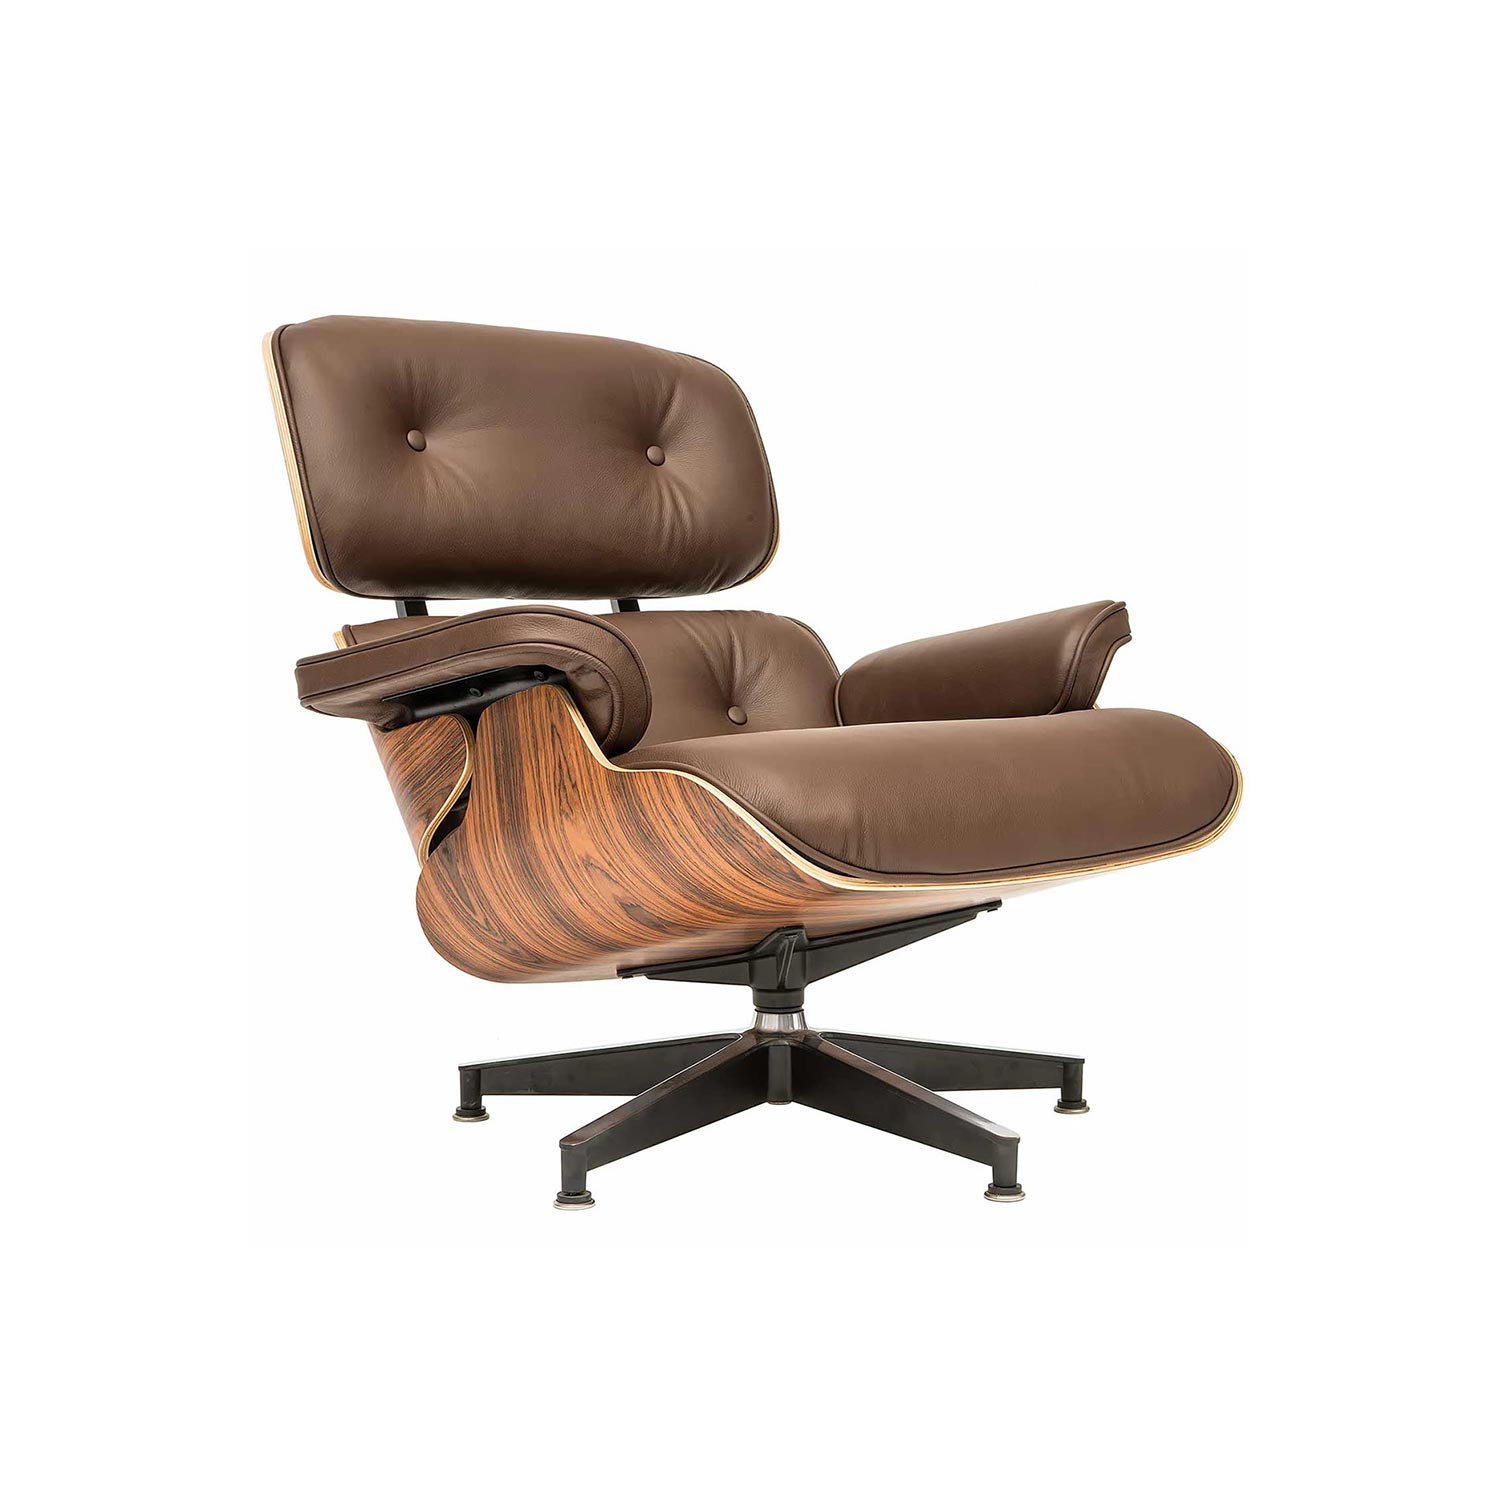 Charles Eames Lounge Chair Eames Inspired Lounge Chair A Steelform Design Classic